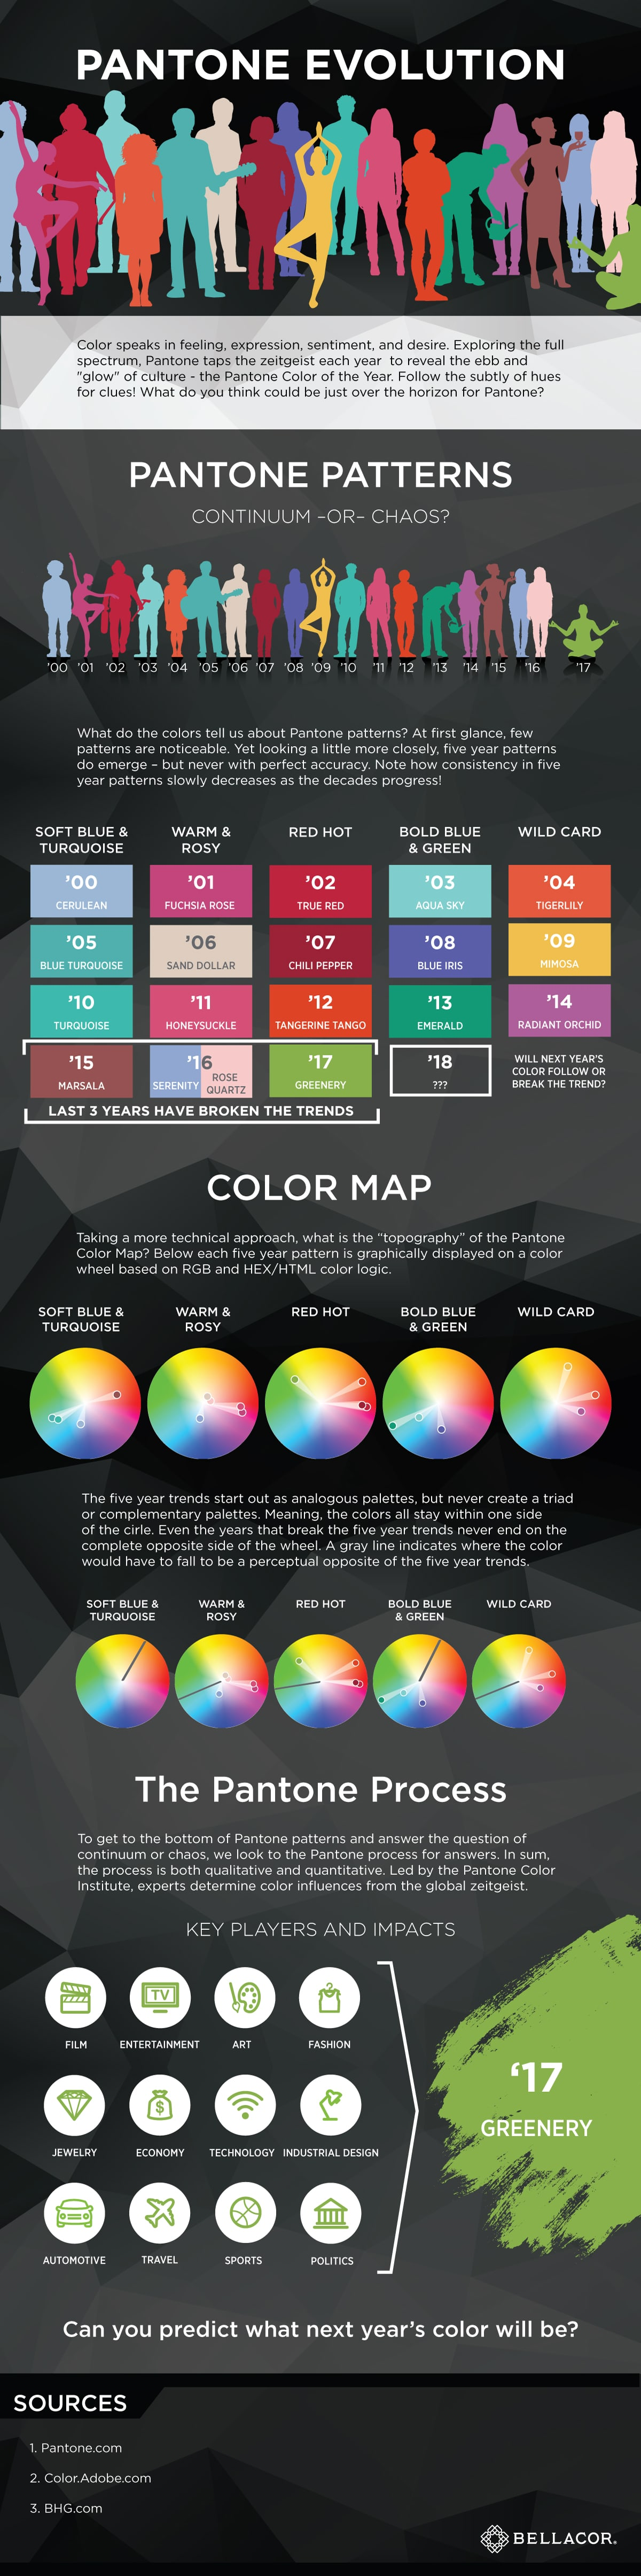 Pantone Evolution and Patterns Infographic